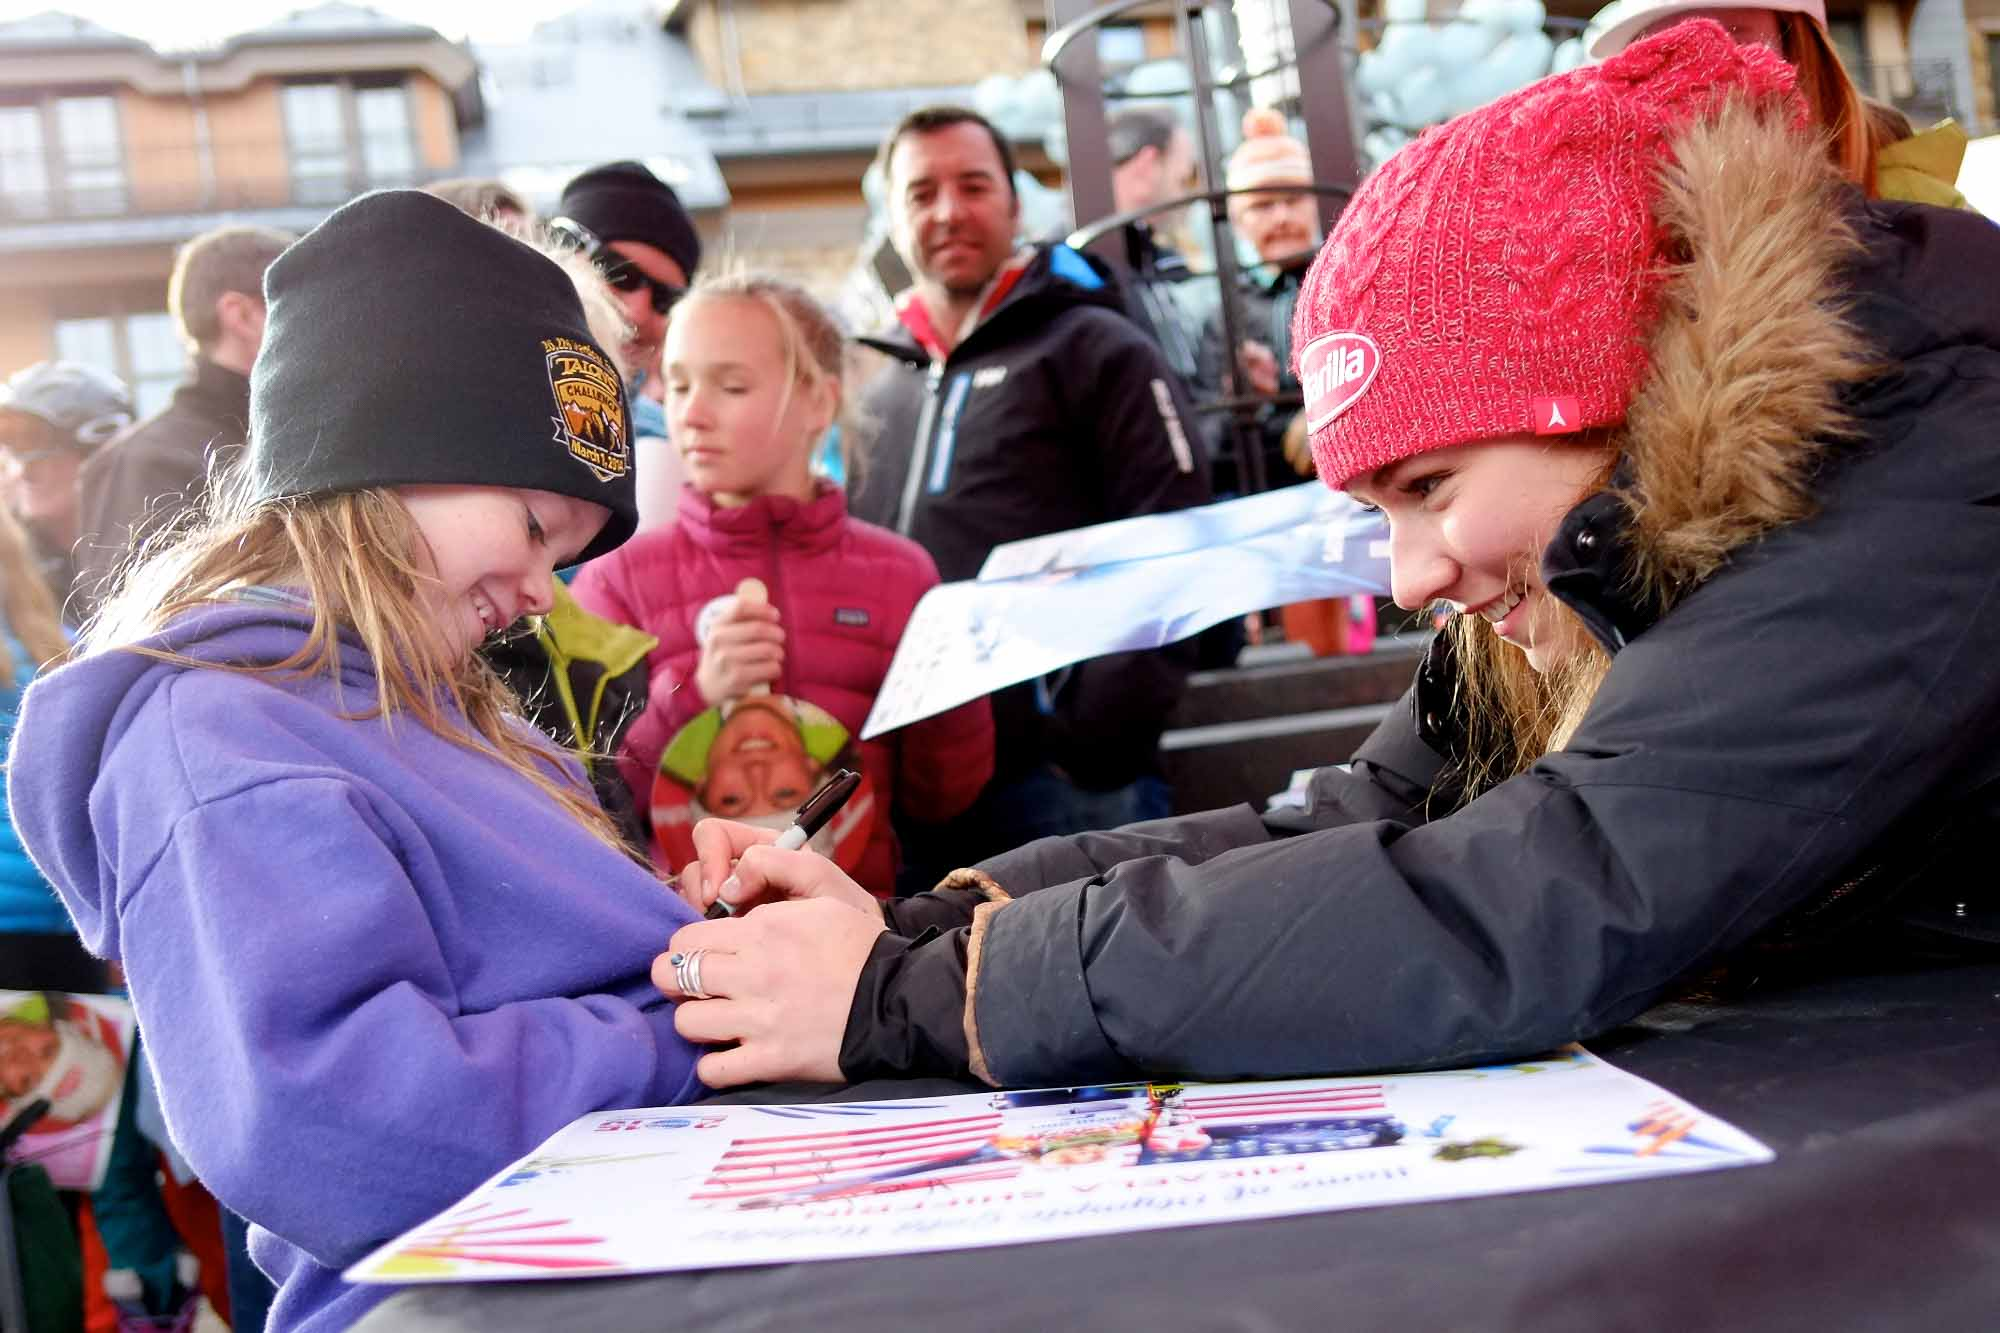 Kailey Thayer, 7, of Gypsum, Colo., smiles as she receives on her sweatshirt the autograph of Olympic gold medalist Mikaela Shiffrin in Vail, Colo. on Friday, March 28, 2014. Fans from the valley and around the world officially welcomed home the Olympian with a celebration.